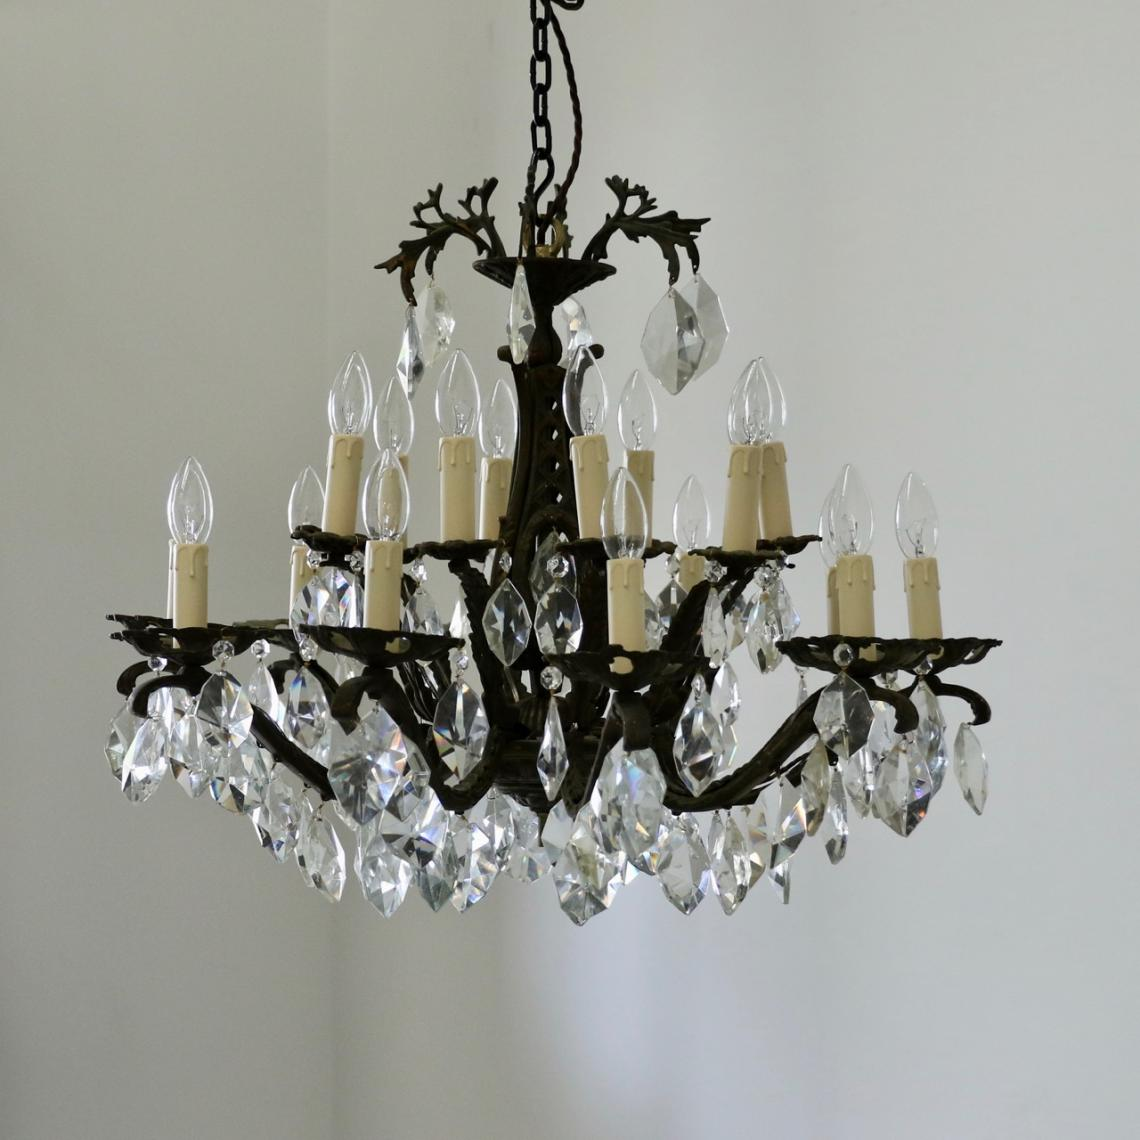 113-40 - Pair of French Chandeliers